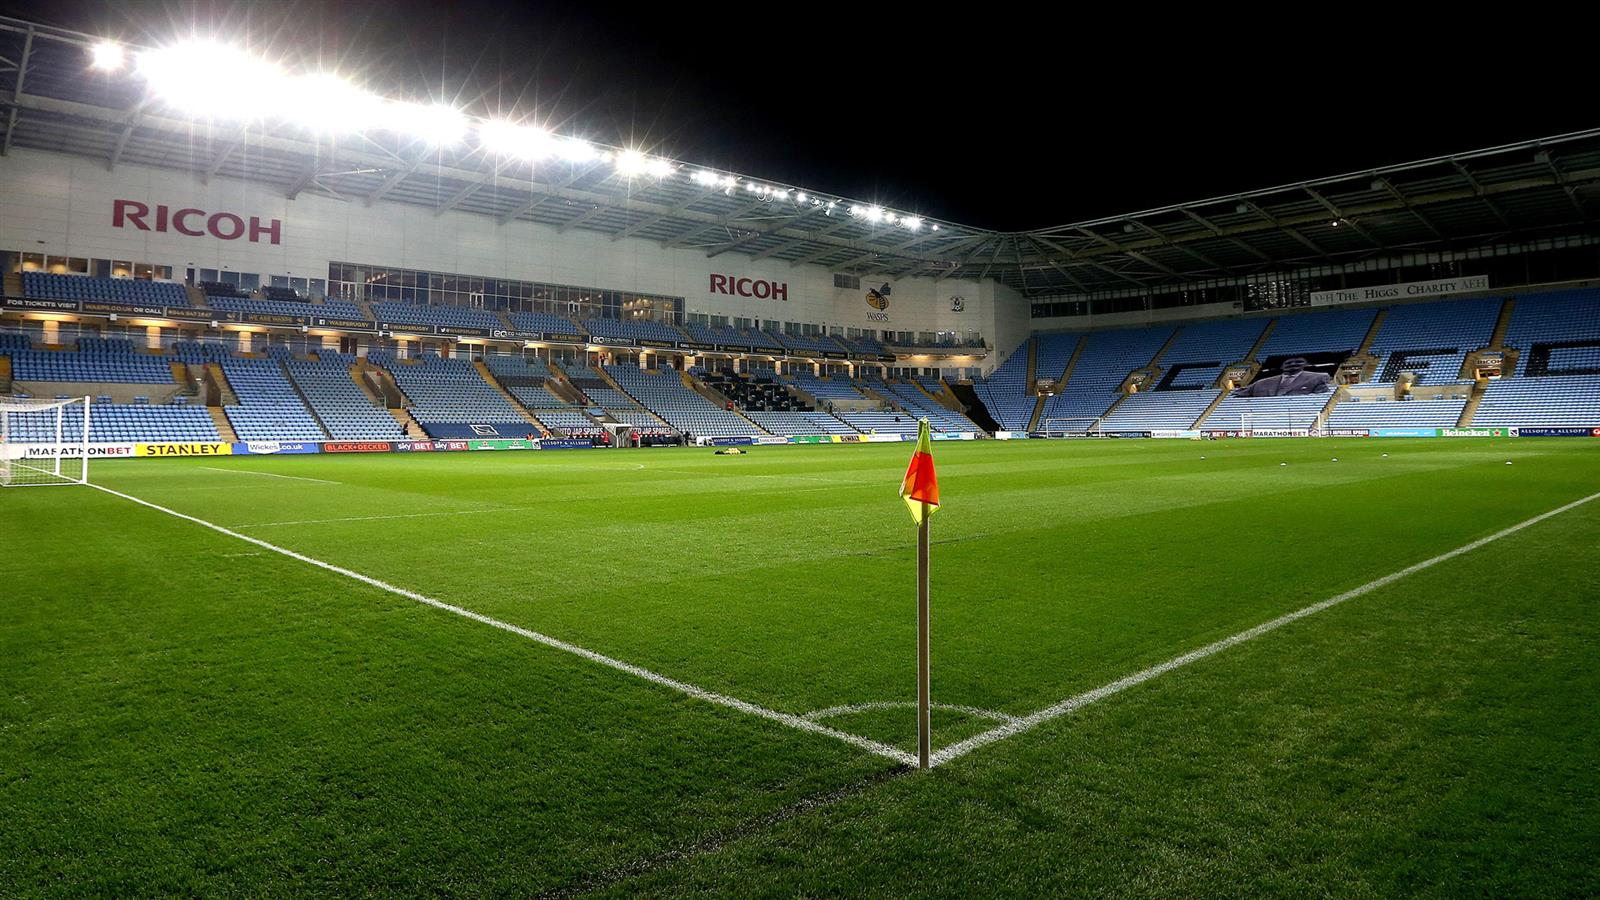 Ricoh Arena Coventry City FC Football Ground Guide Coventry city fc photos